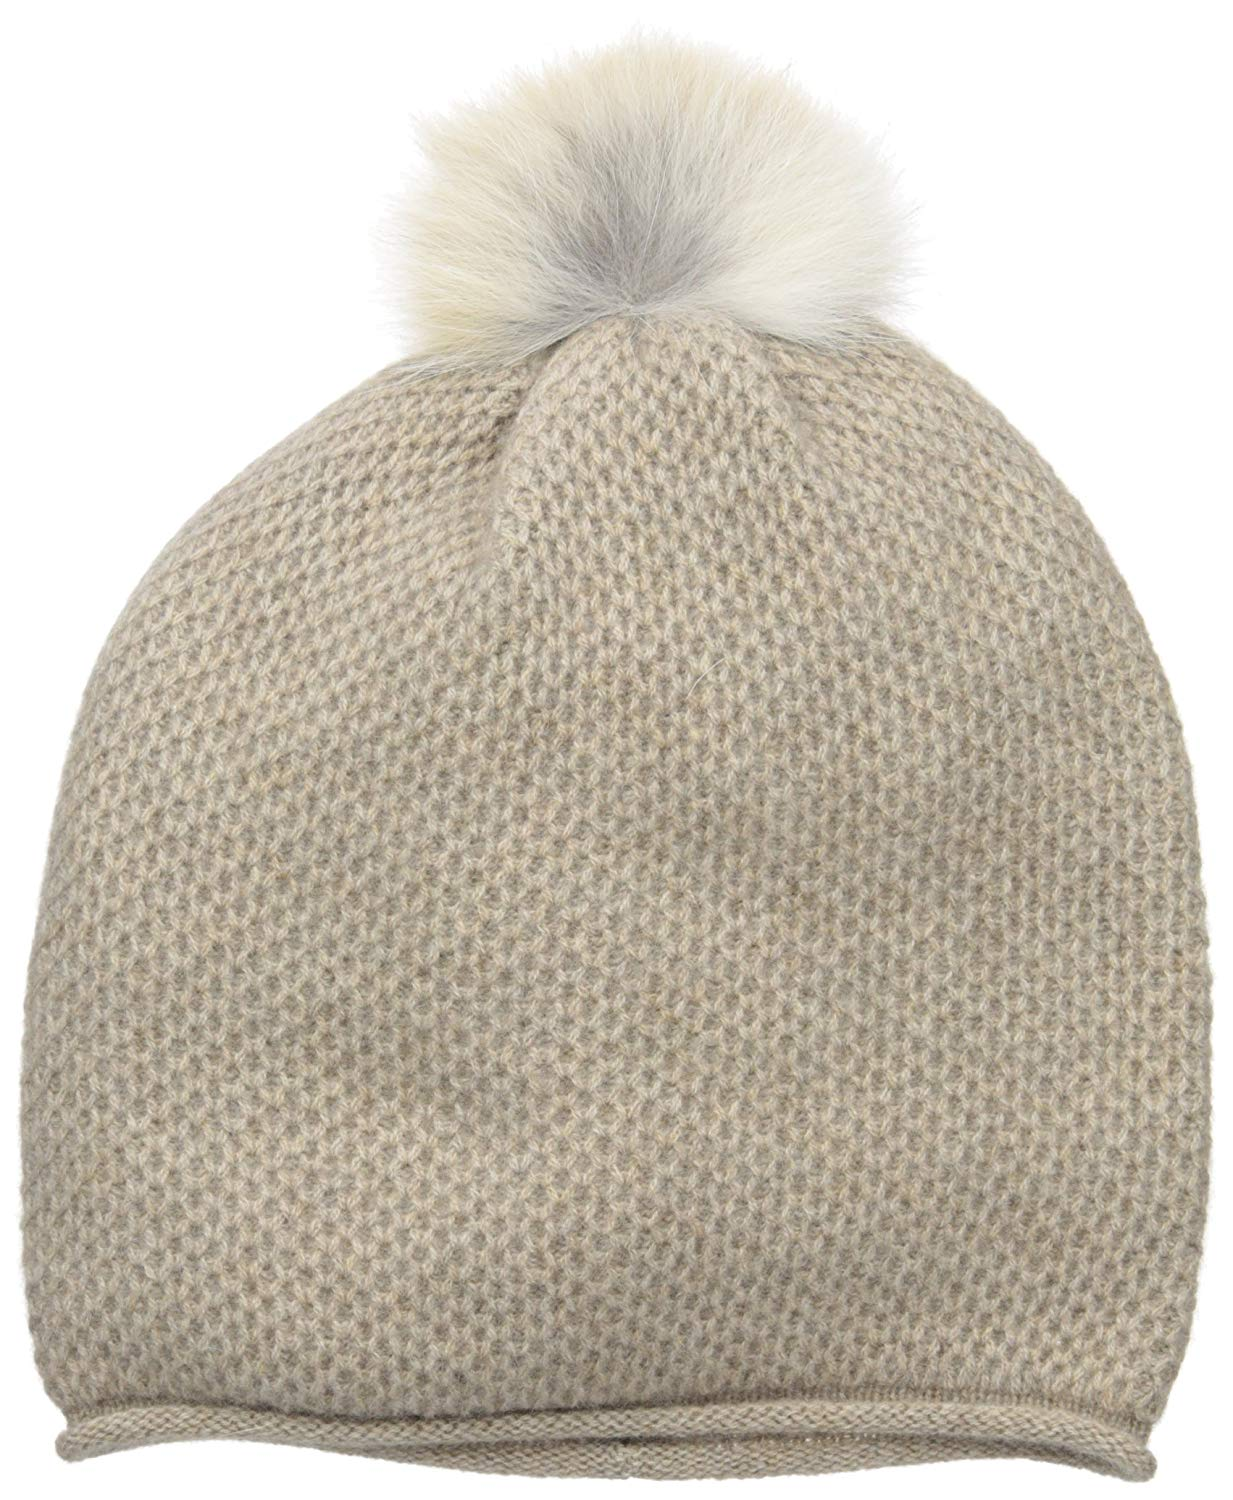 86127a8df62 Get Quotations · Sofia Cashmere Women s 100% Cashmere Honeycomb Hat with  Coyote Fur Pom